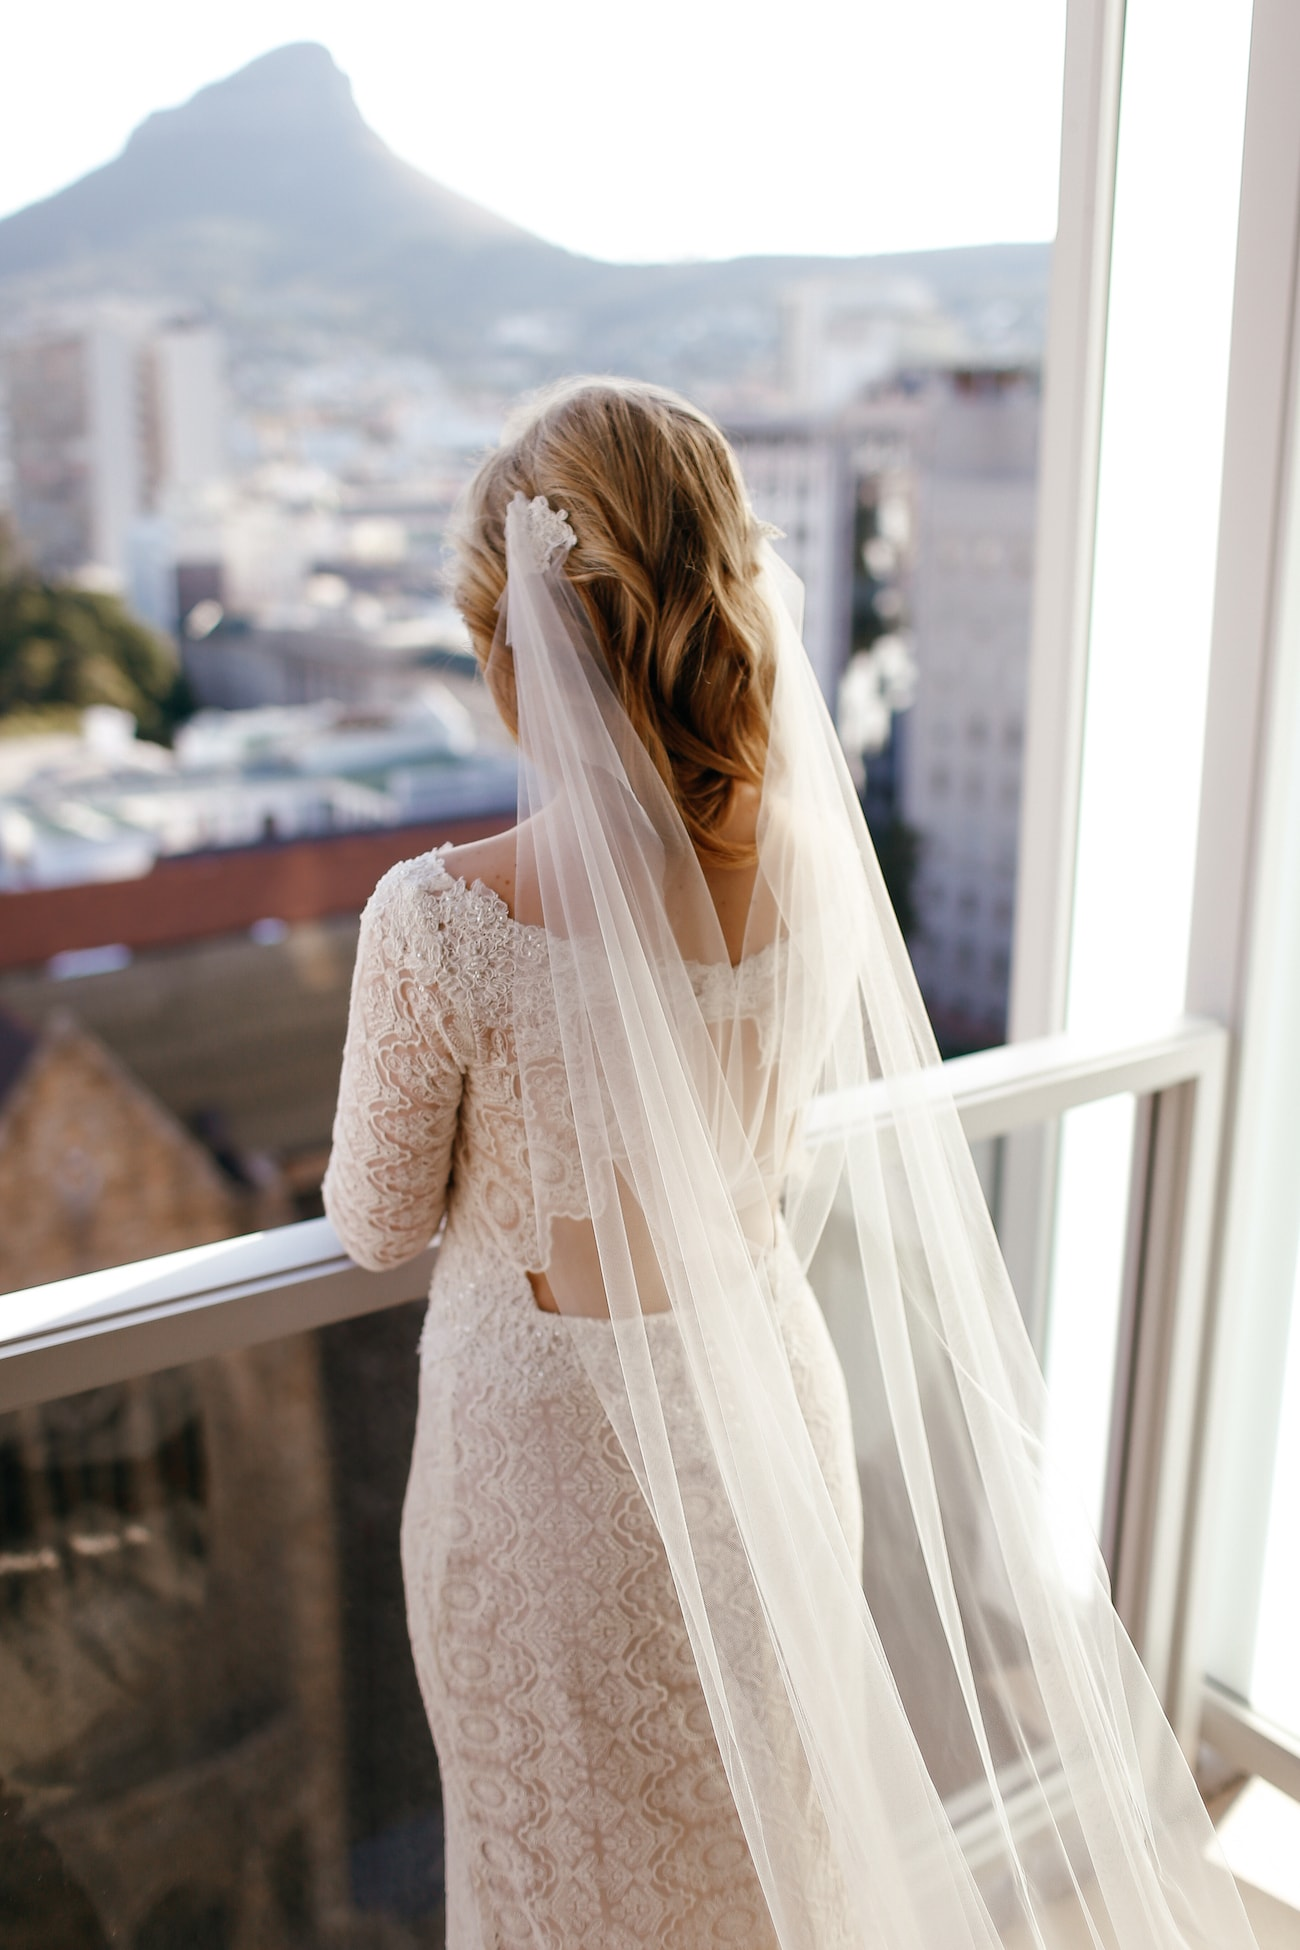 Cape Town Bride | Vintage Chic City Wedding at the Cape Town Club | Credit: Duane Smith